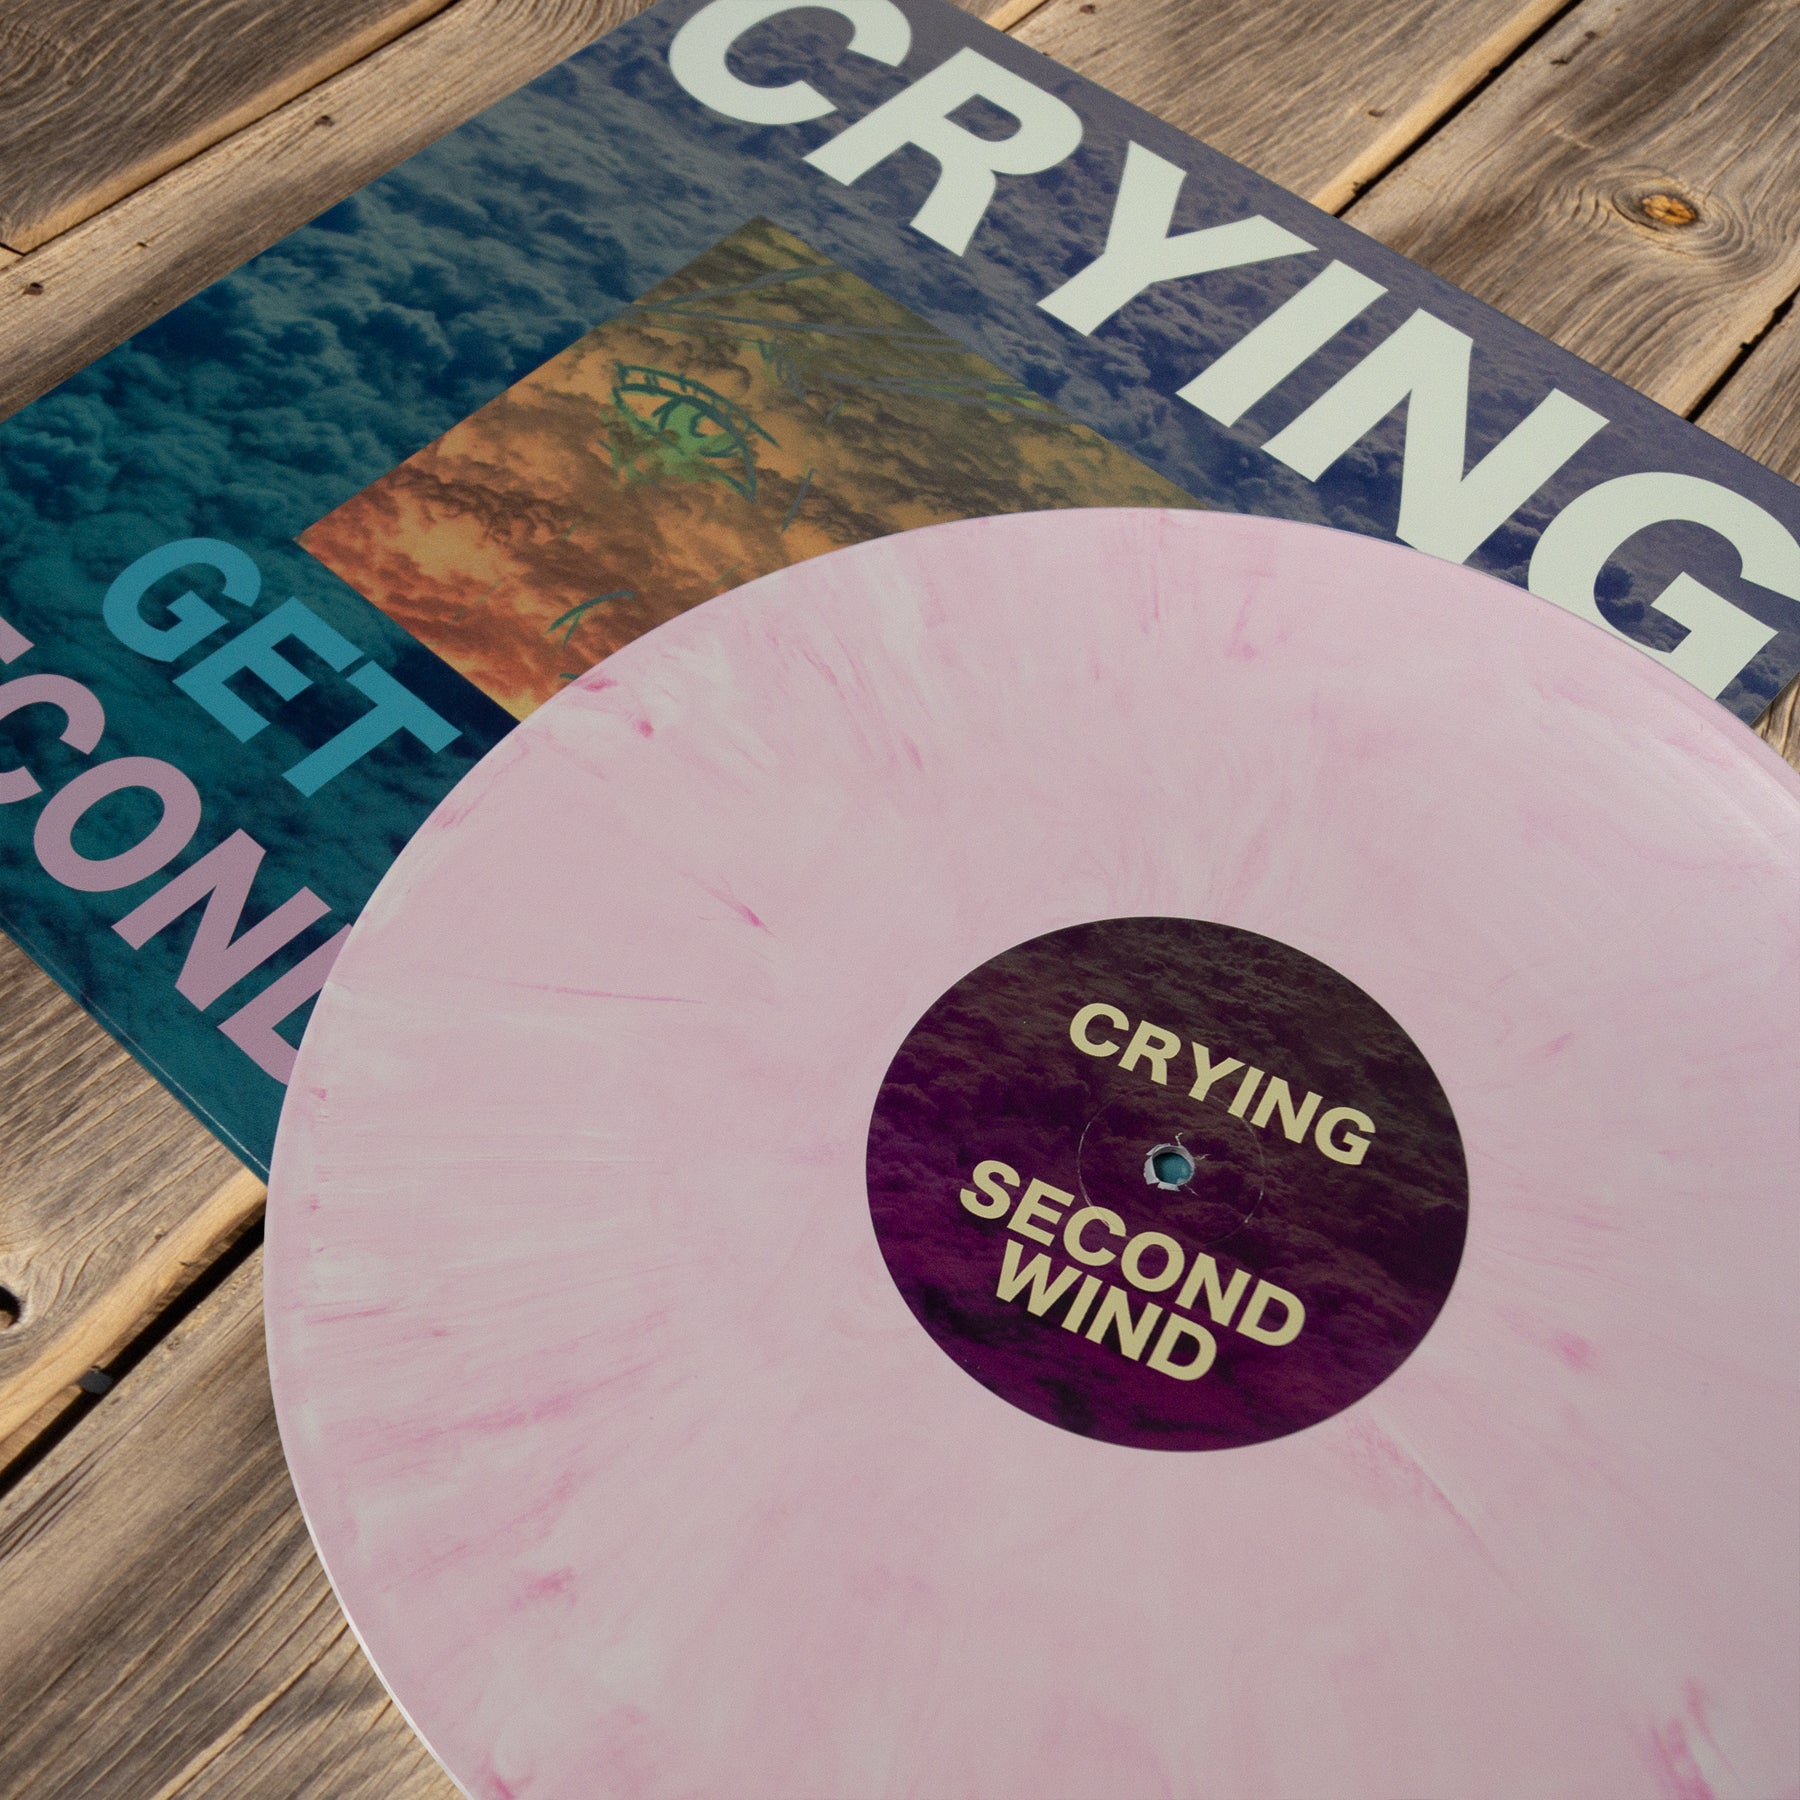 CRYING - GET OLDE AND SECOND WIND - 12 VINYL